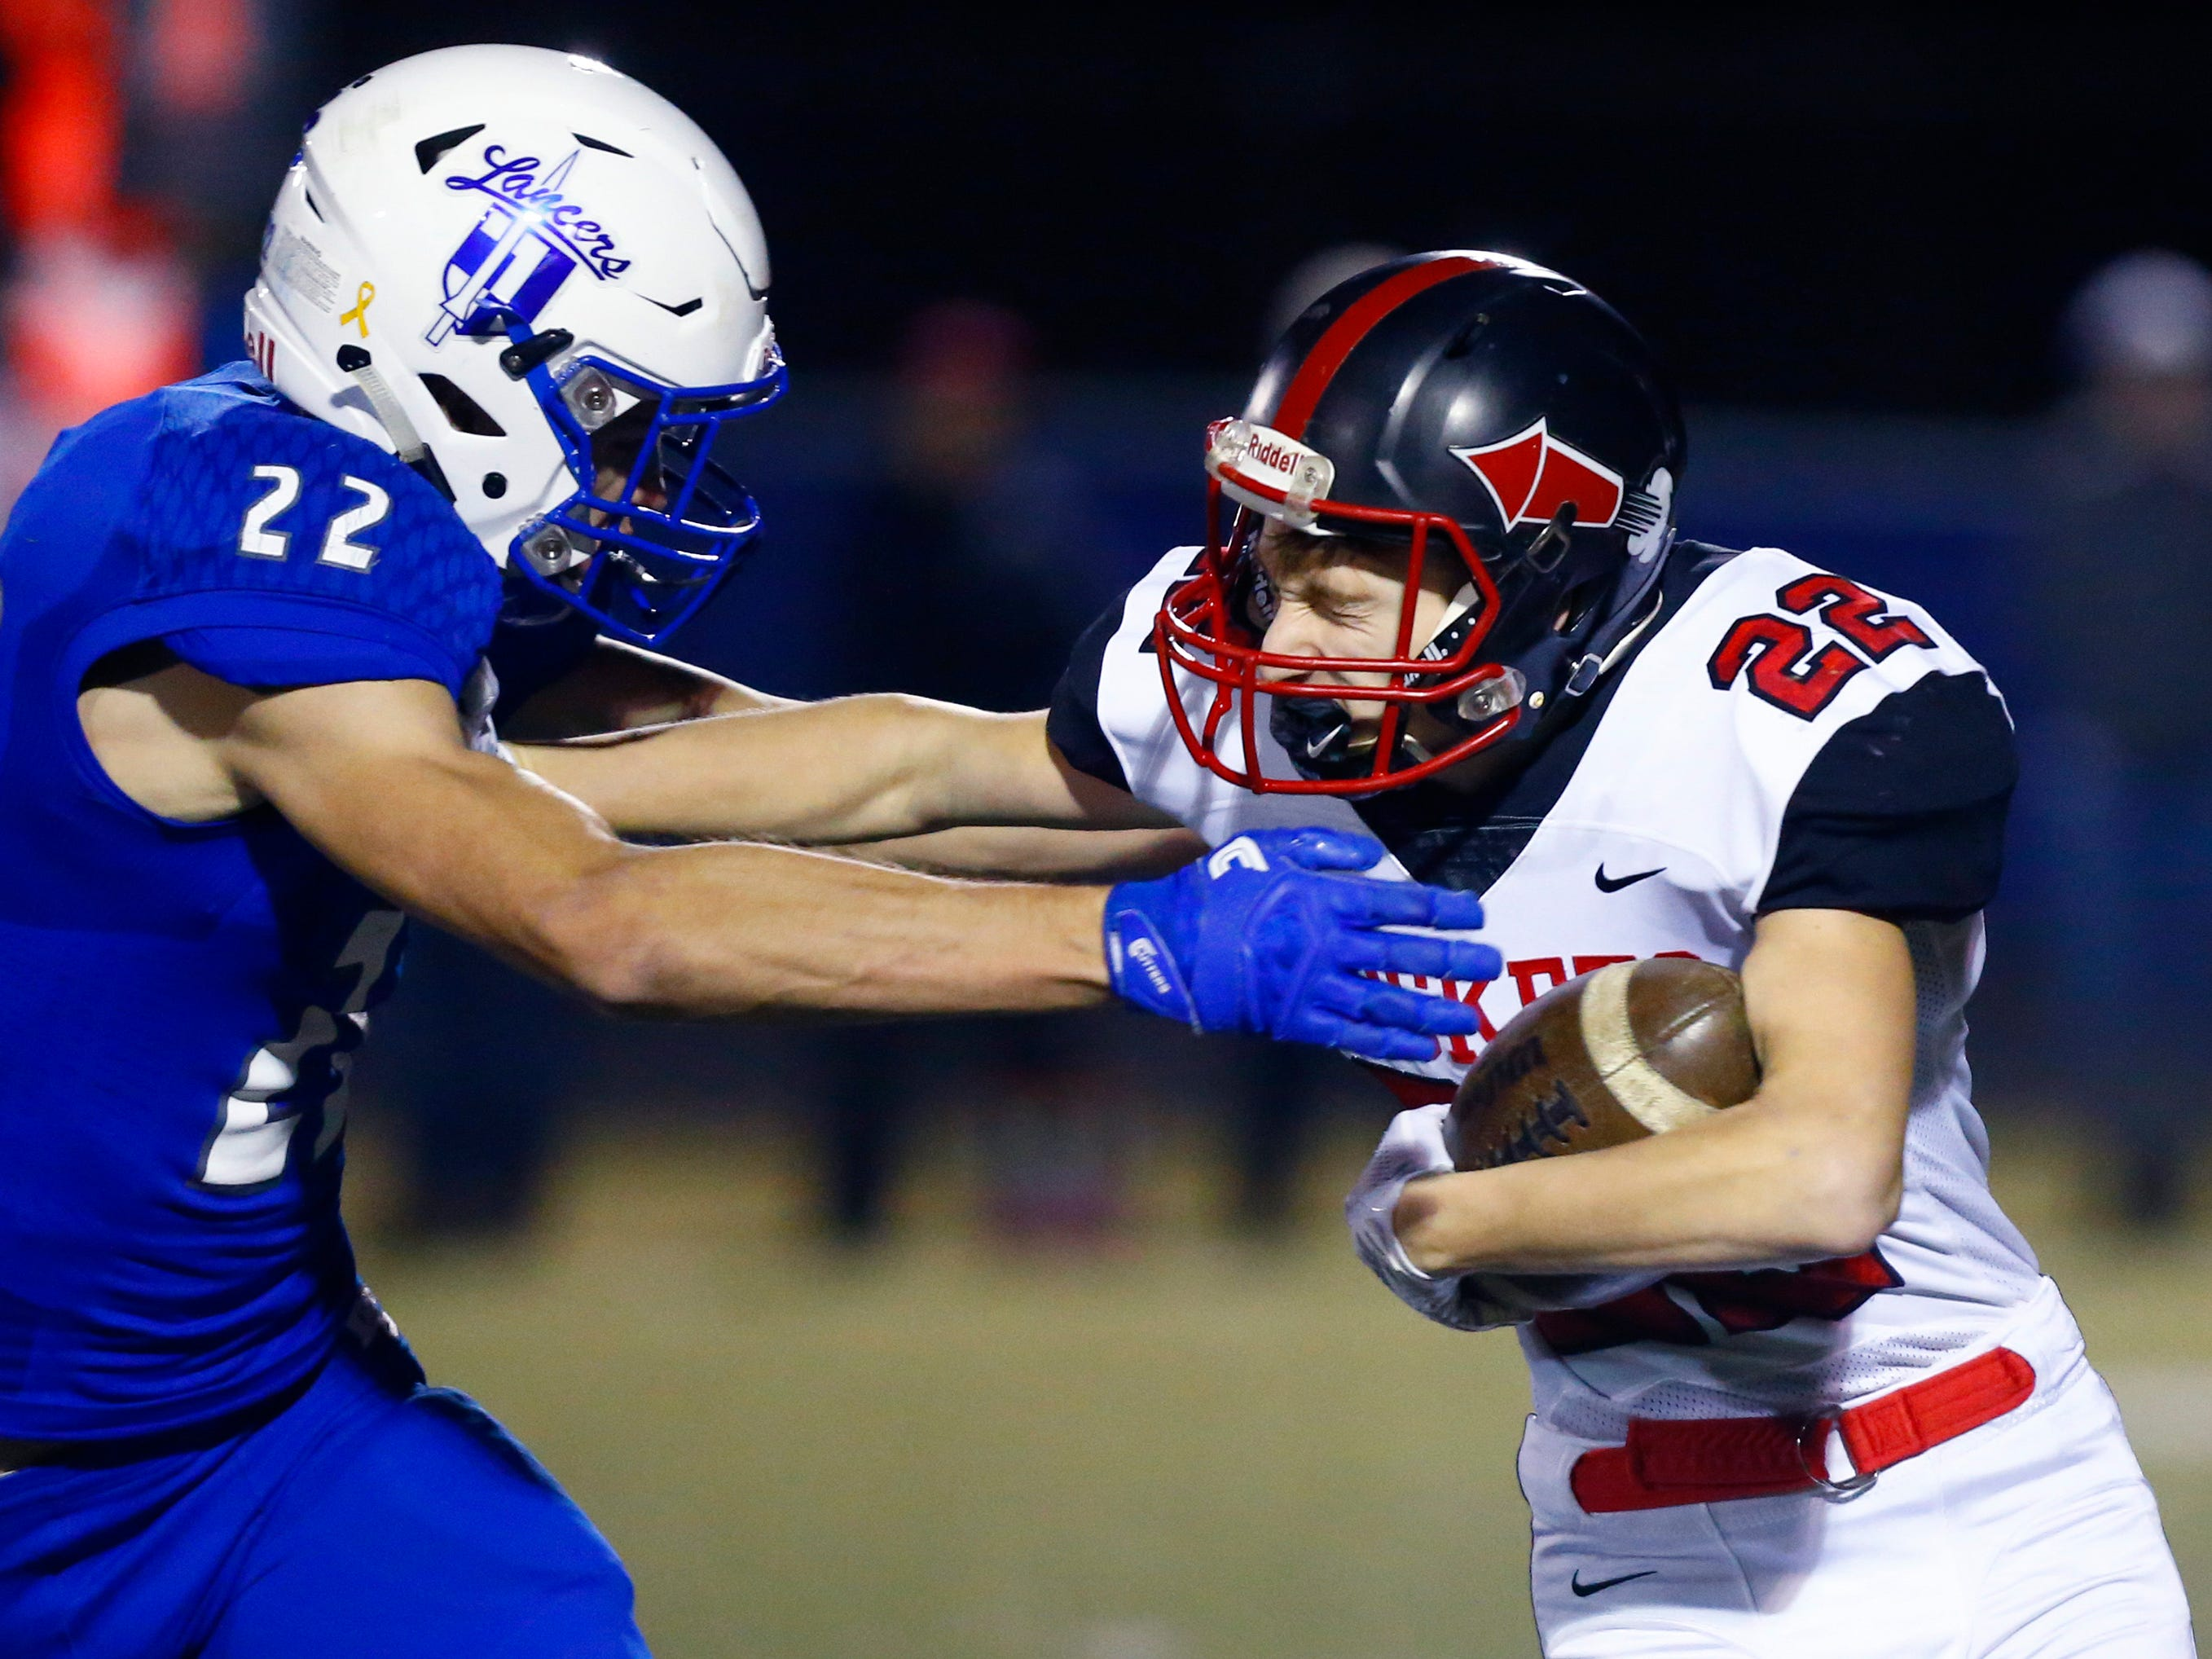 South Milwaukee's Broc Grenda strong arms Brookfield Central's Joey Cleary during a WIAA Division 2 playoff game at Central on Oct. 19.